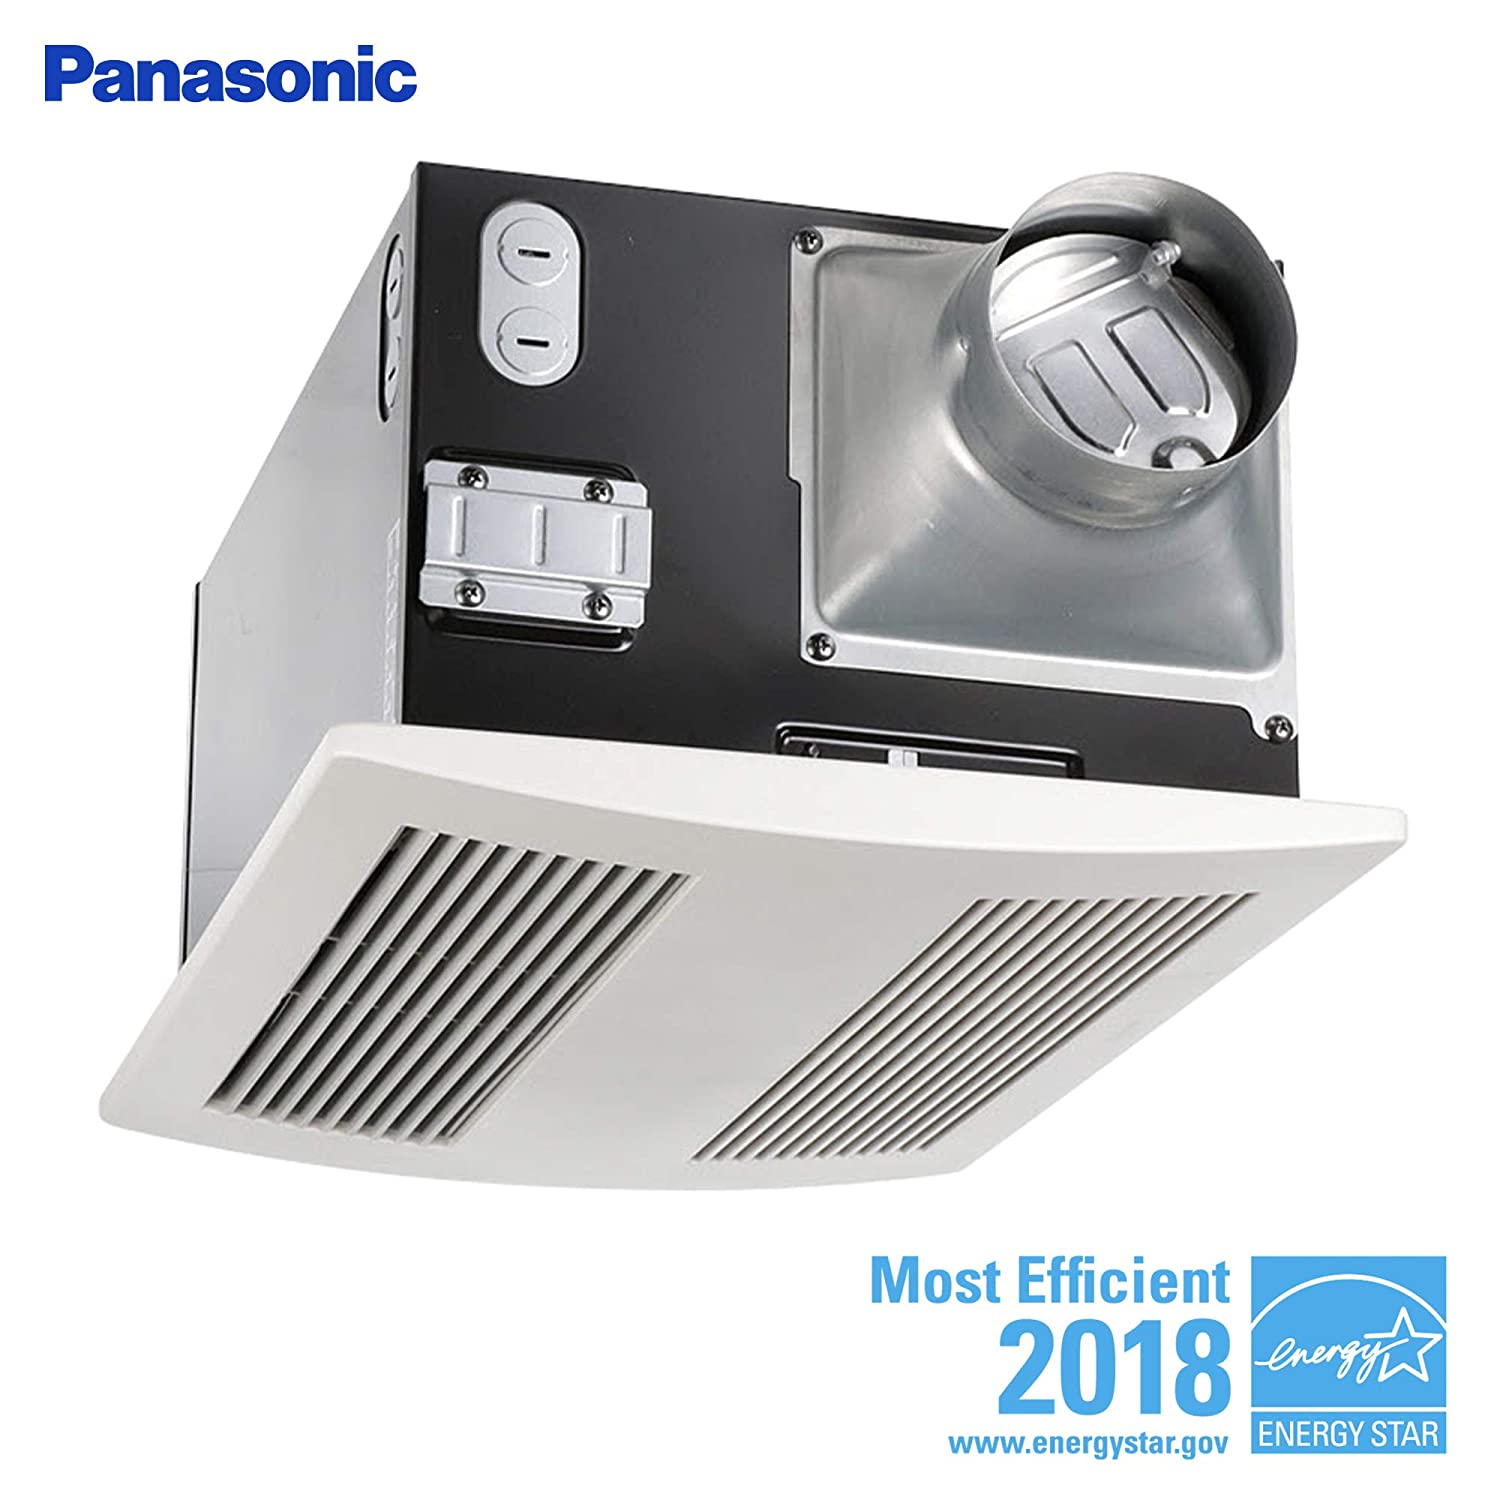 Panasonic FV-11VH2 Whisper Warm 110 CFM Ceiling Mounted Fan